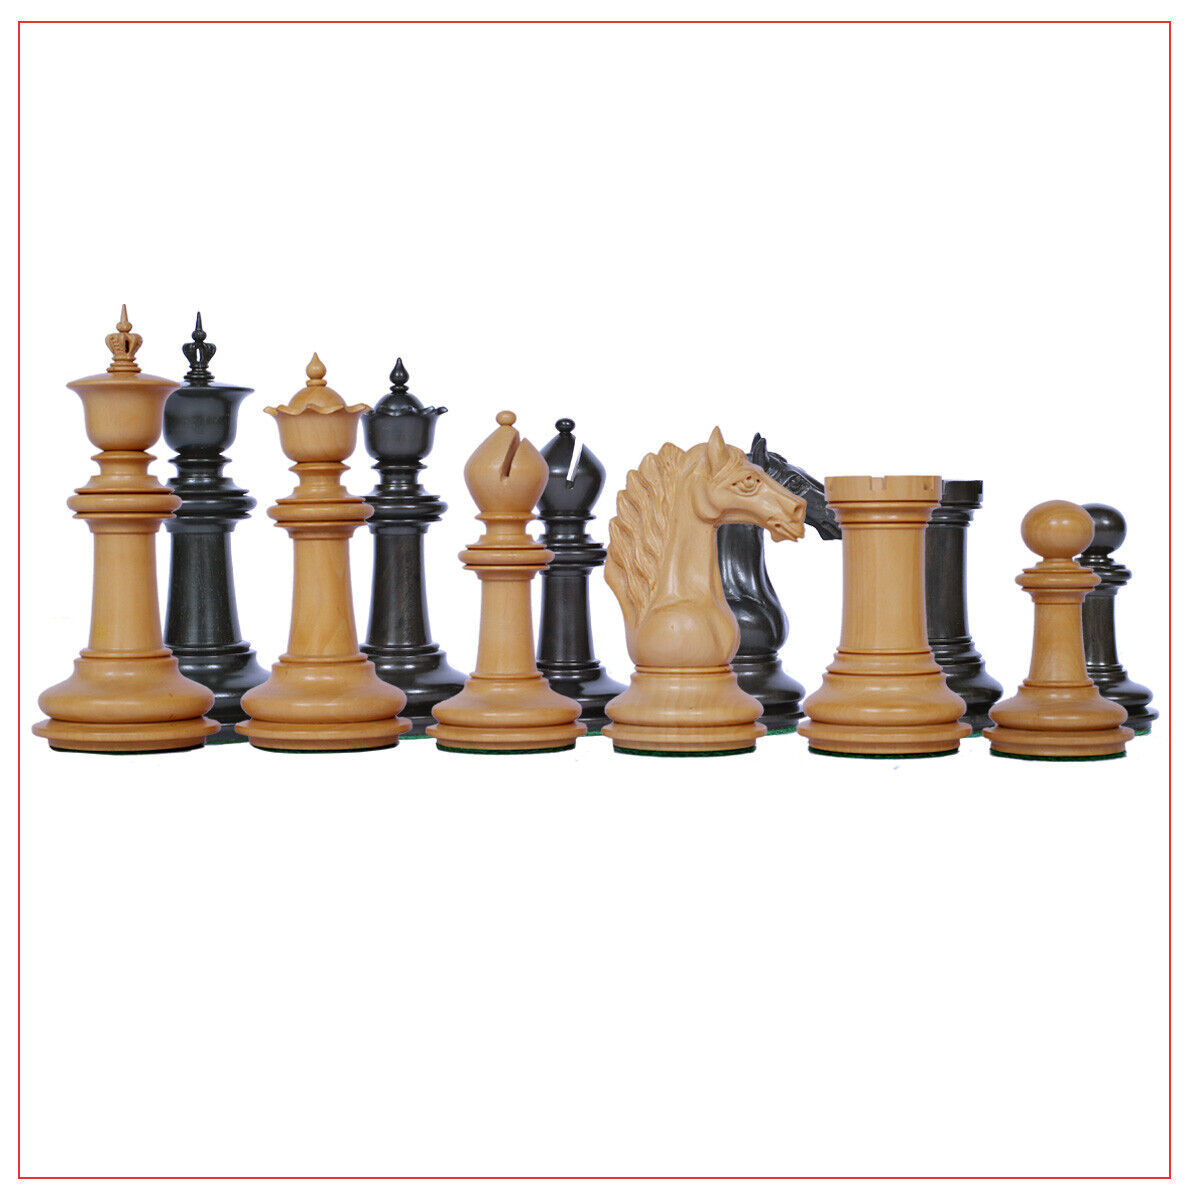 Macedon Series 4.4 inch Chessmen in Genuine Ebony and Box wood